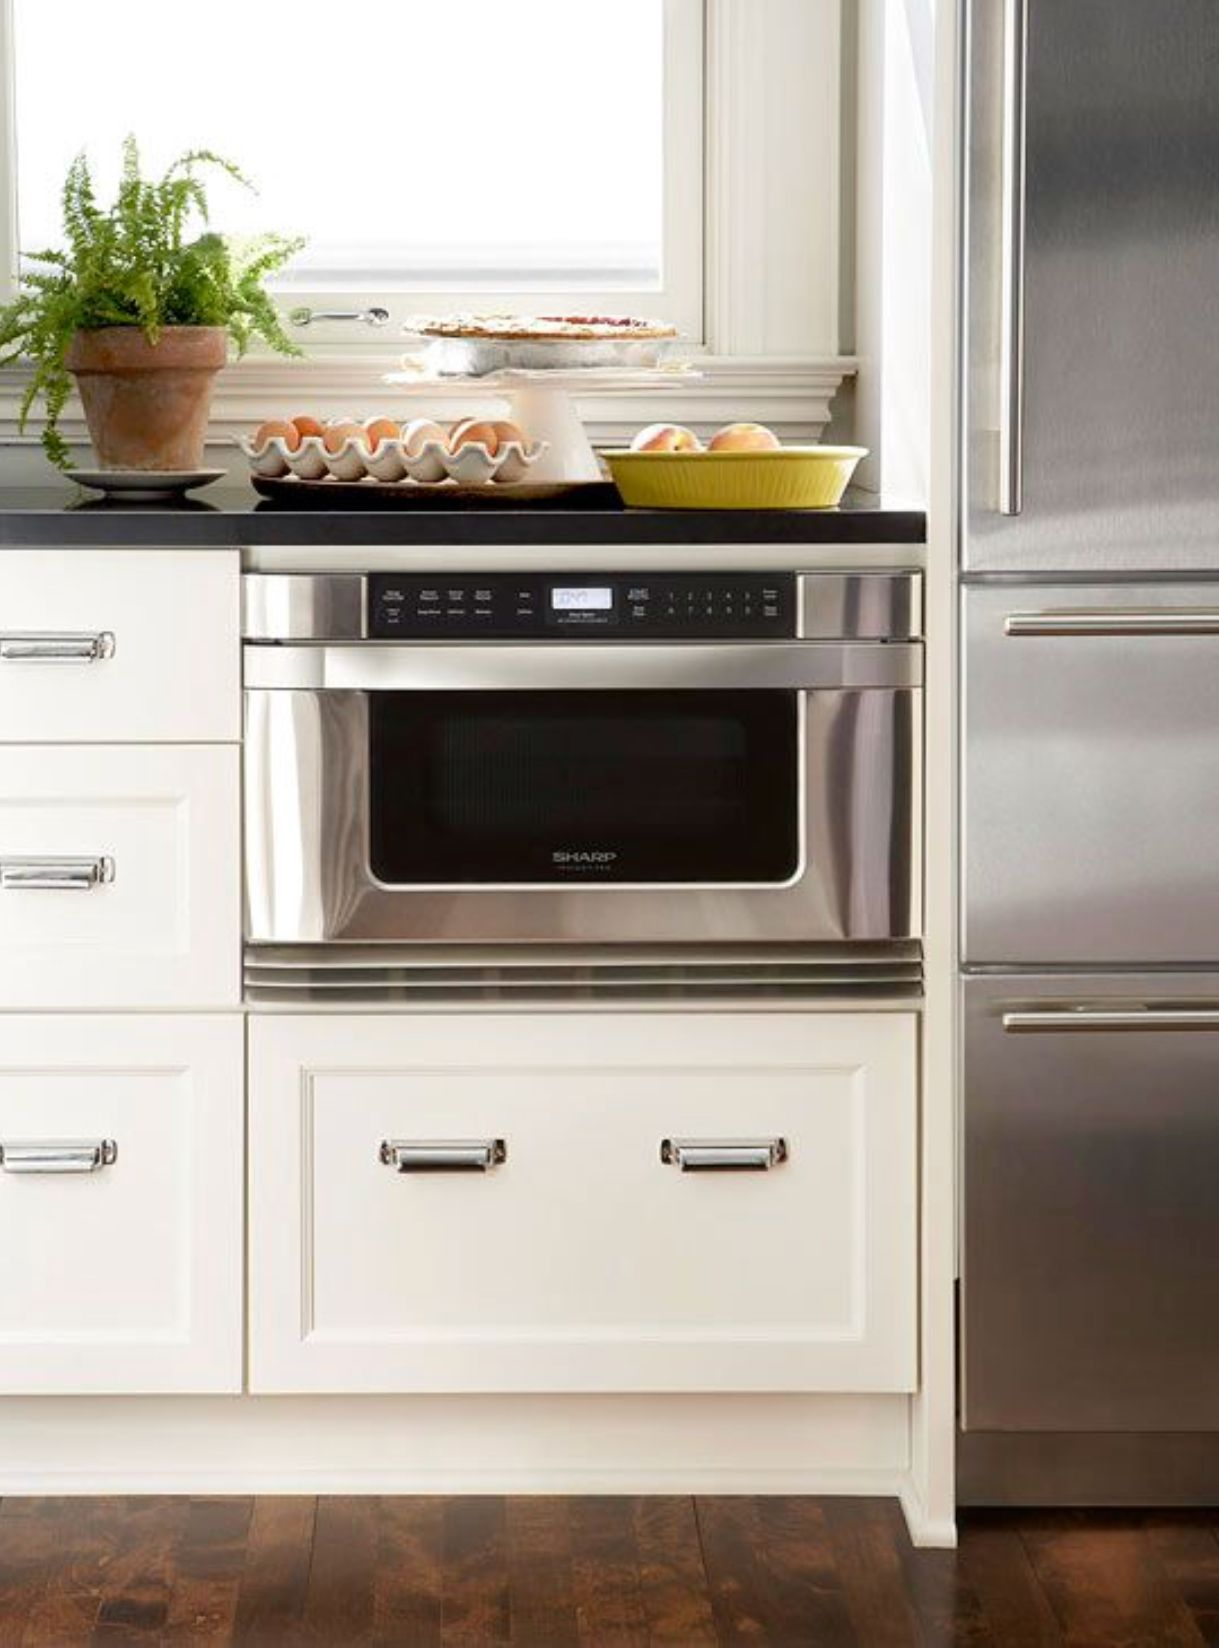 I Like The Look Of A Built In Microwave And In Lower Cabinet